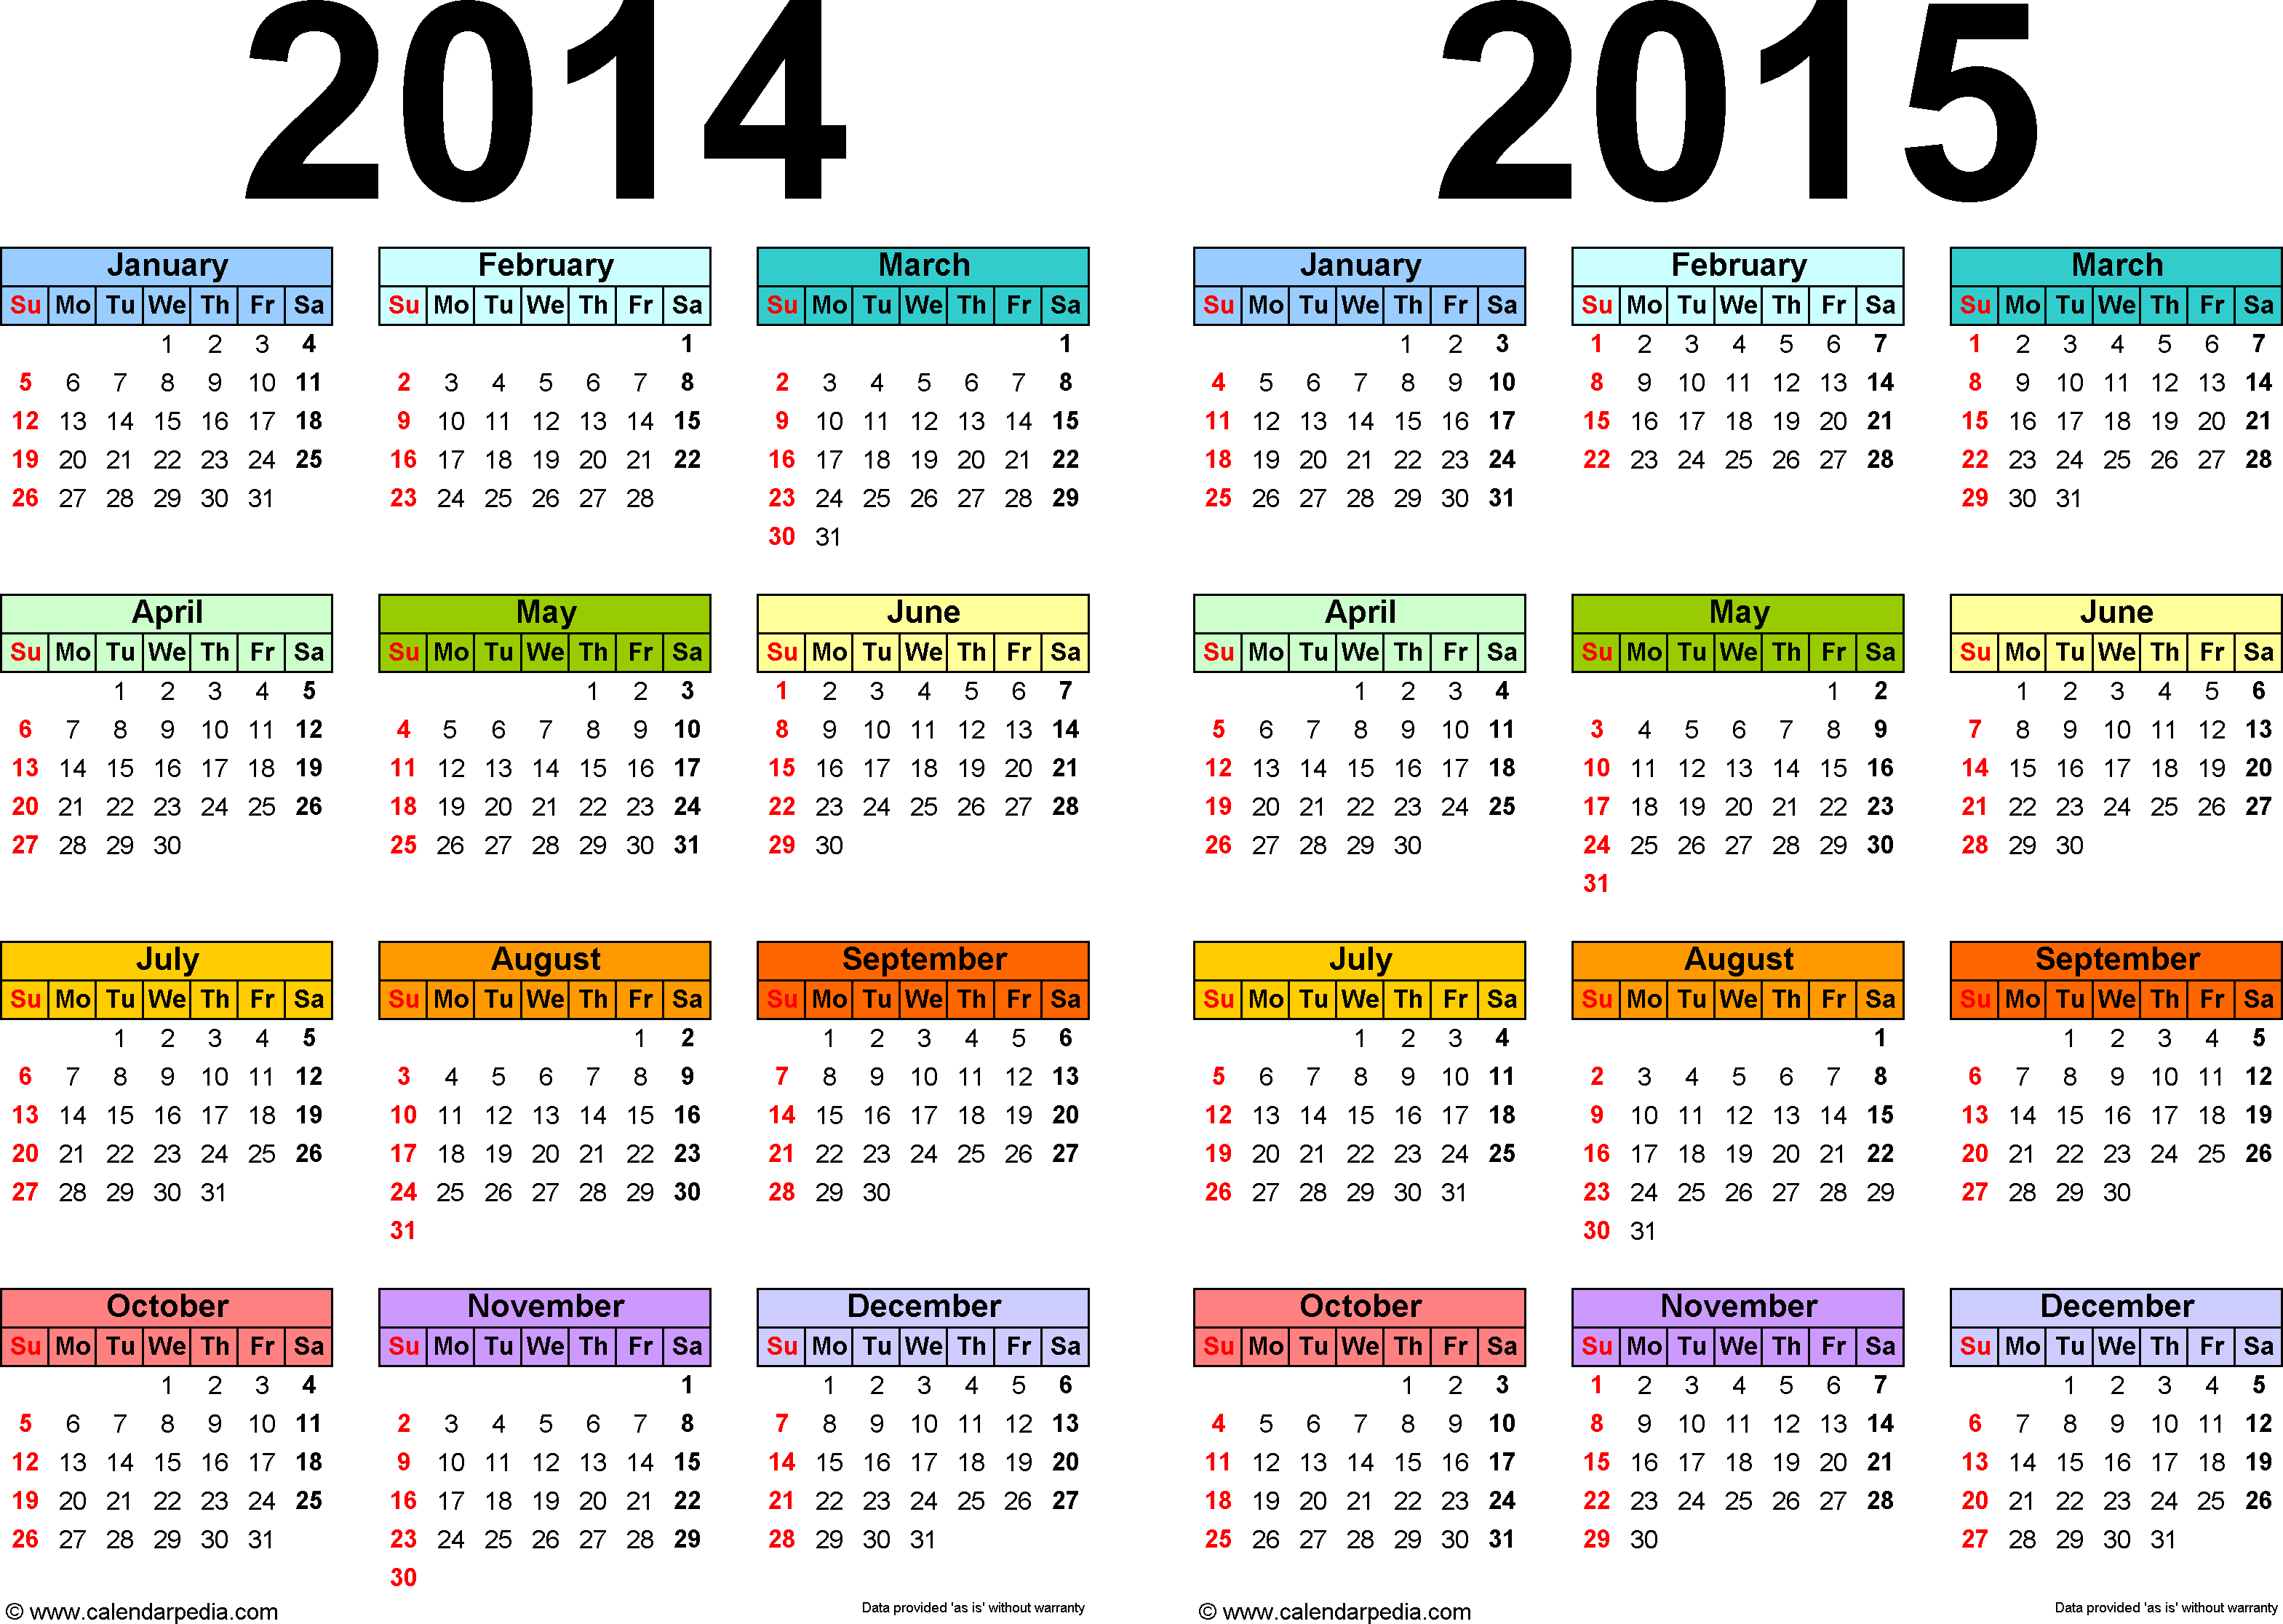 2014-2015 Calendar - free printable two-year PDF calendars